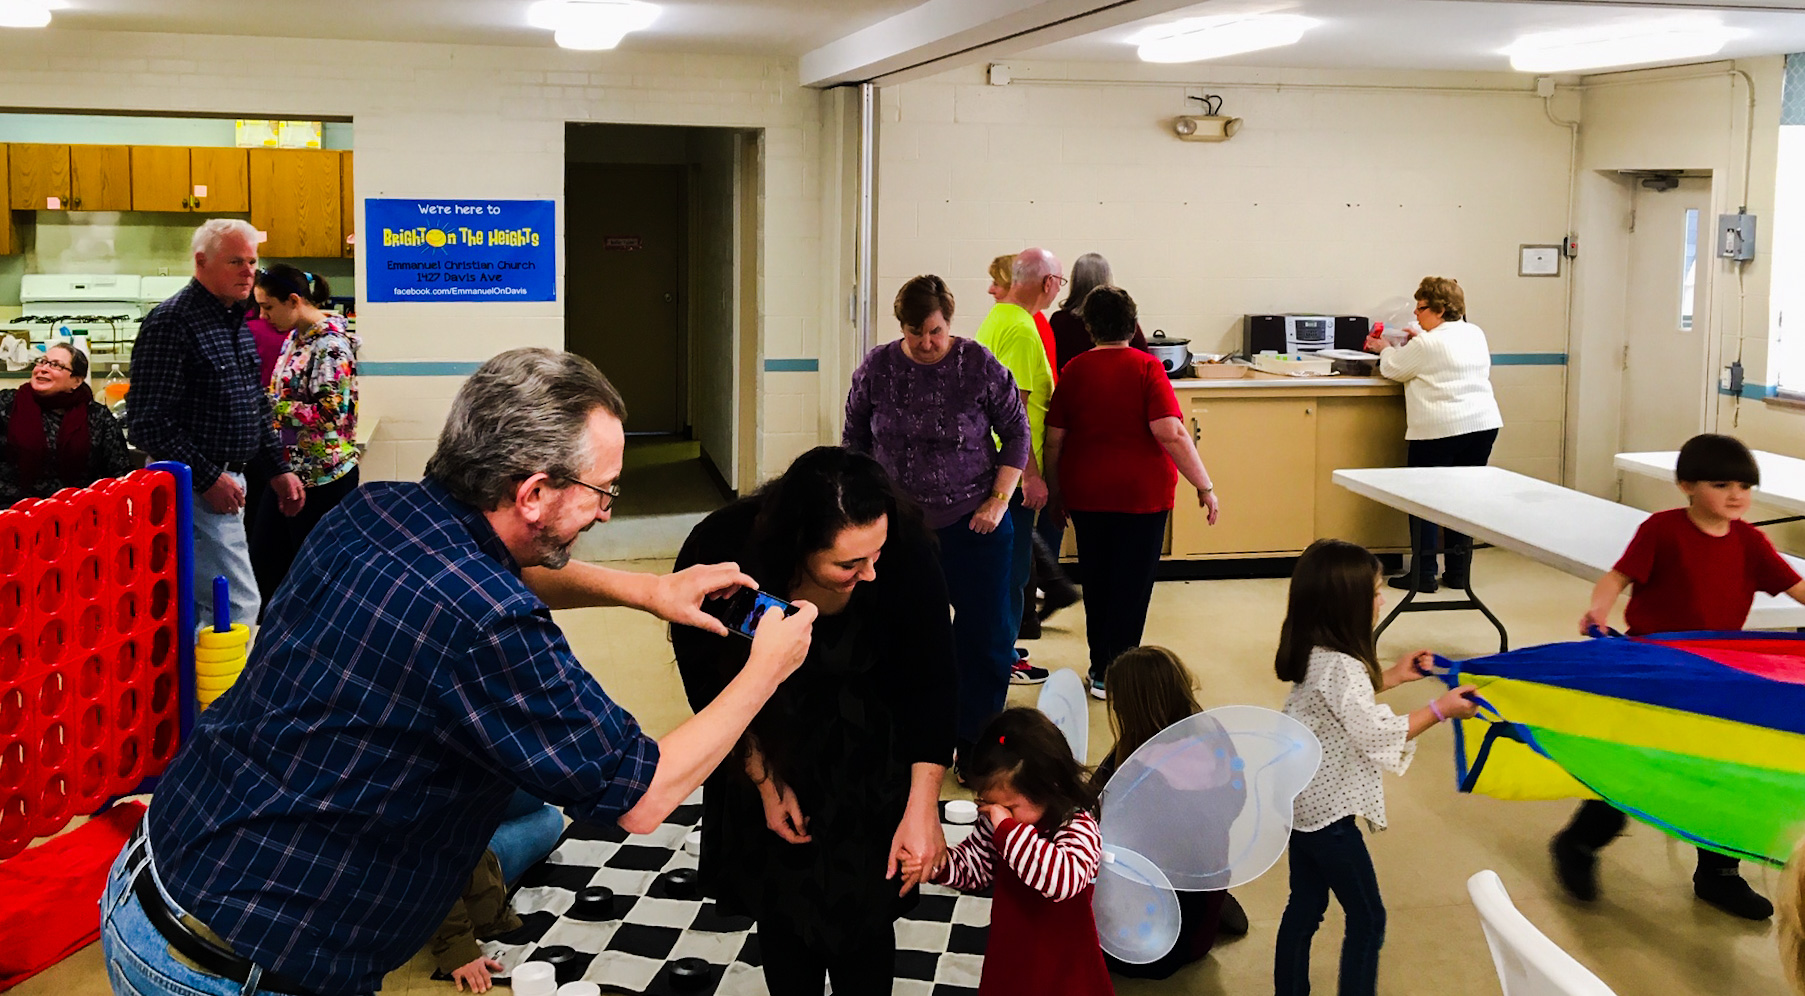 Emmanuel Christian Church - We Love Fun Day! Sunday February 10, 2019